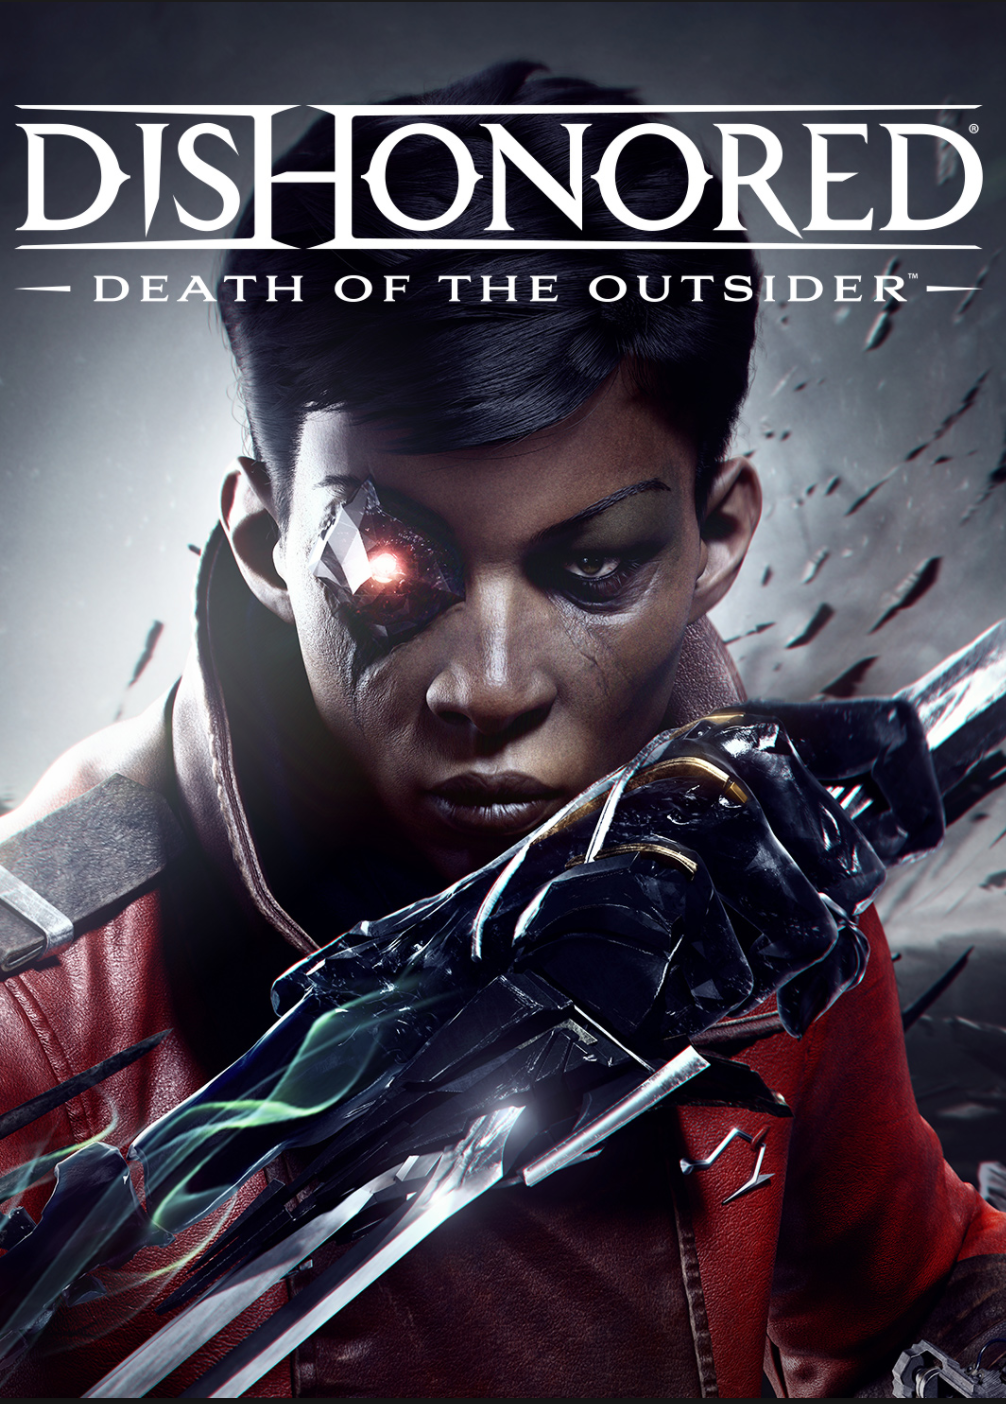 Dishonored Death of the Outsider PC